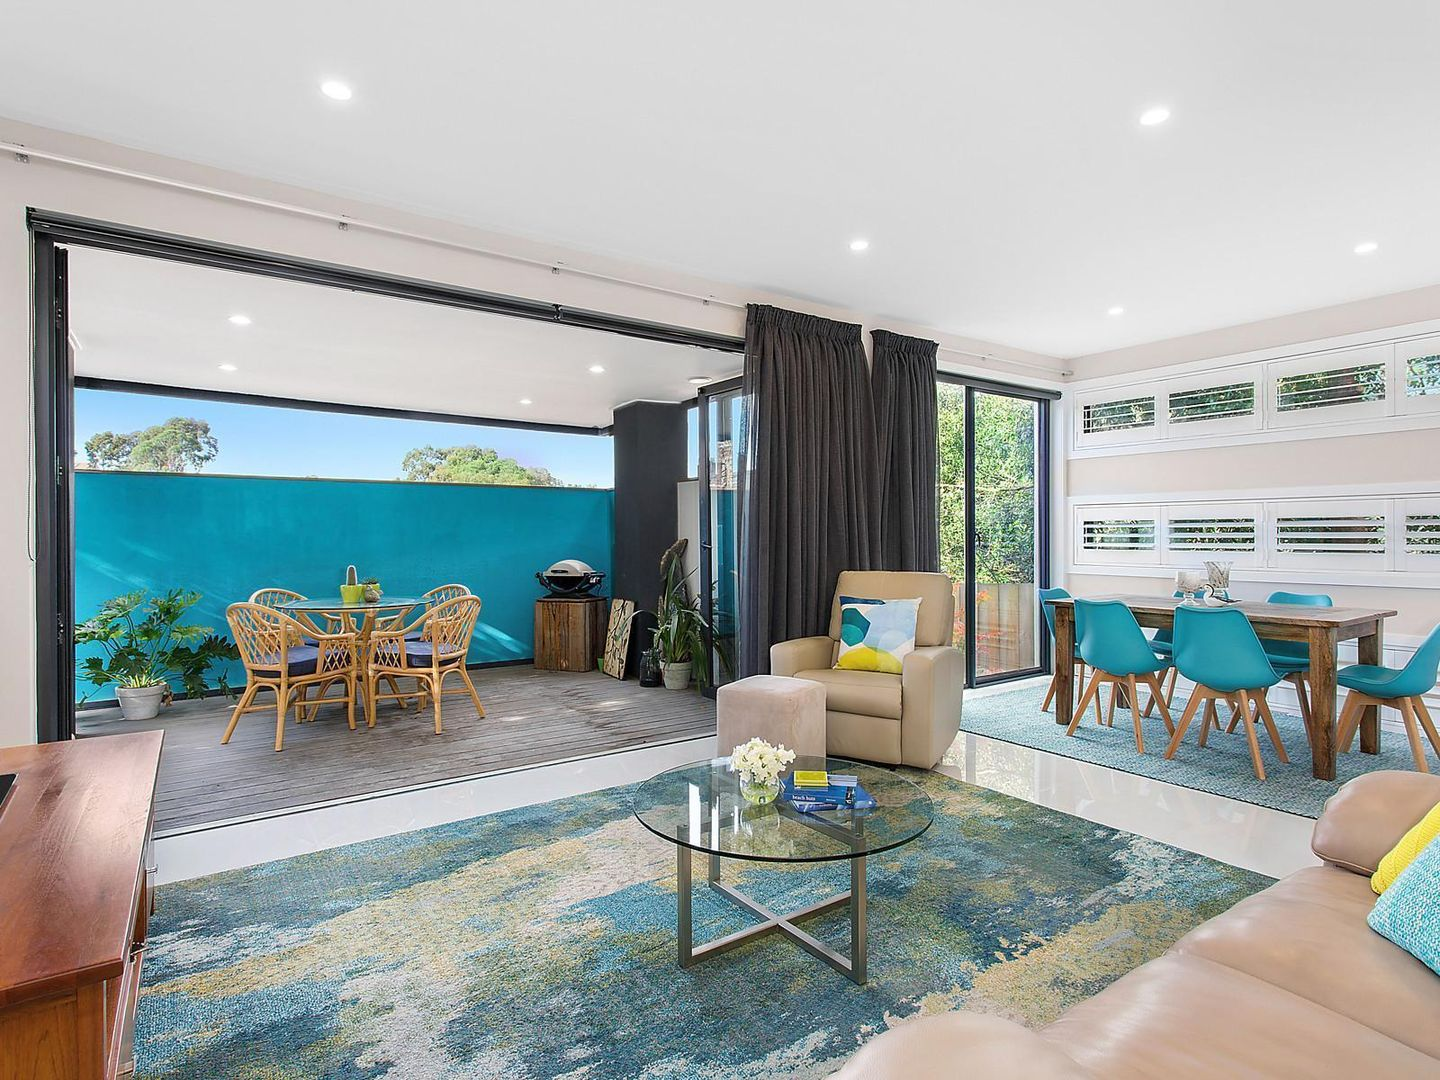 2/8 Woodview Court, Wheelers Hill VIC 3150, Image 2